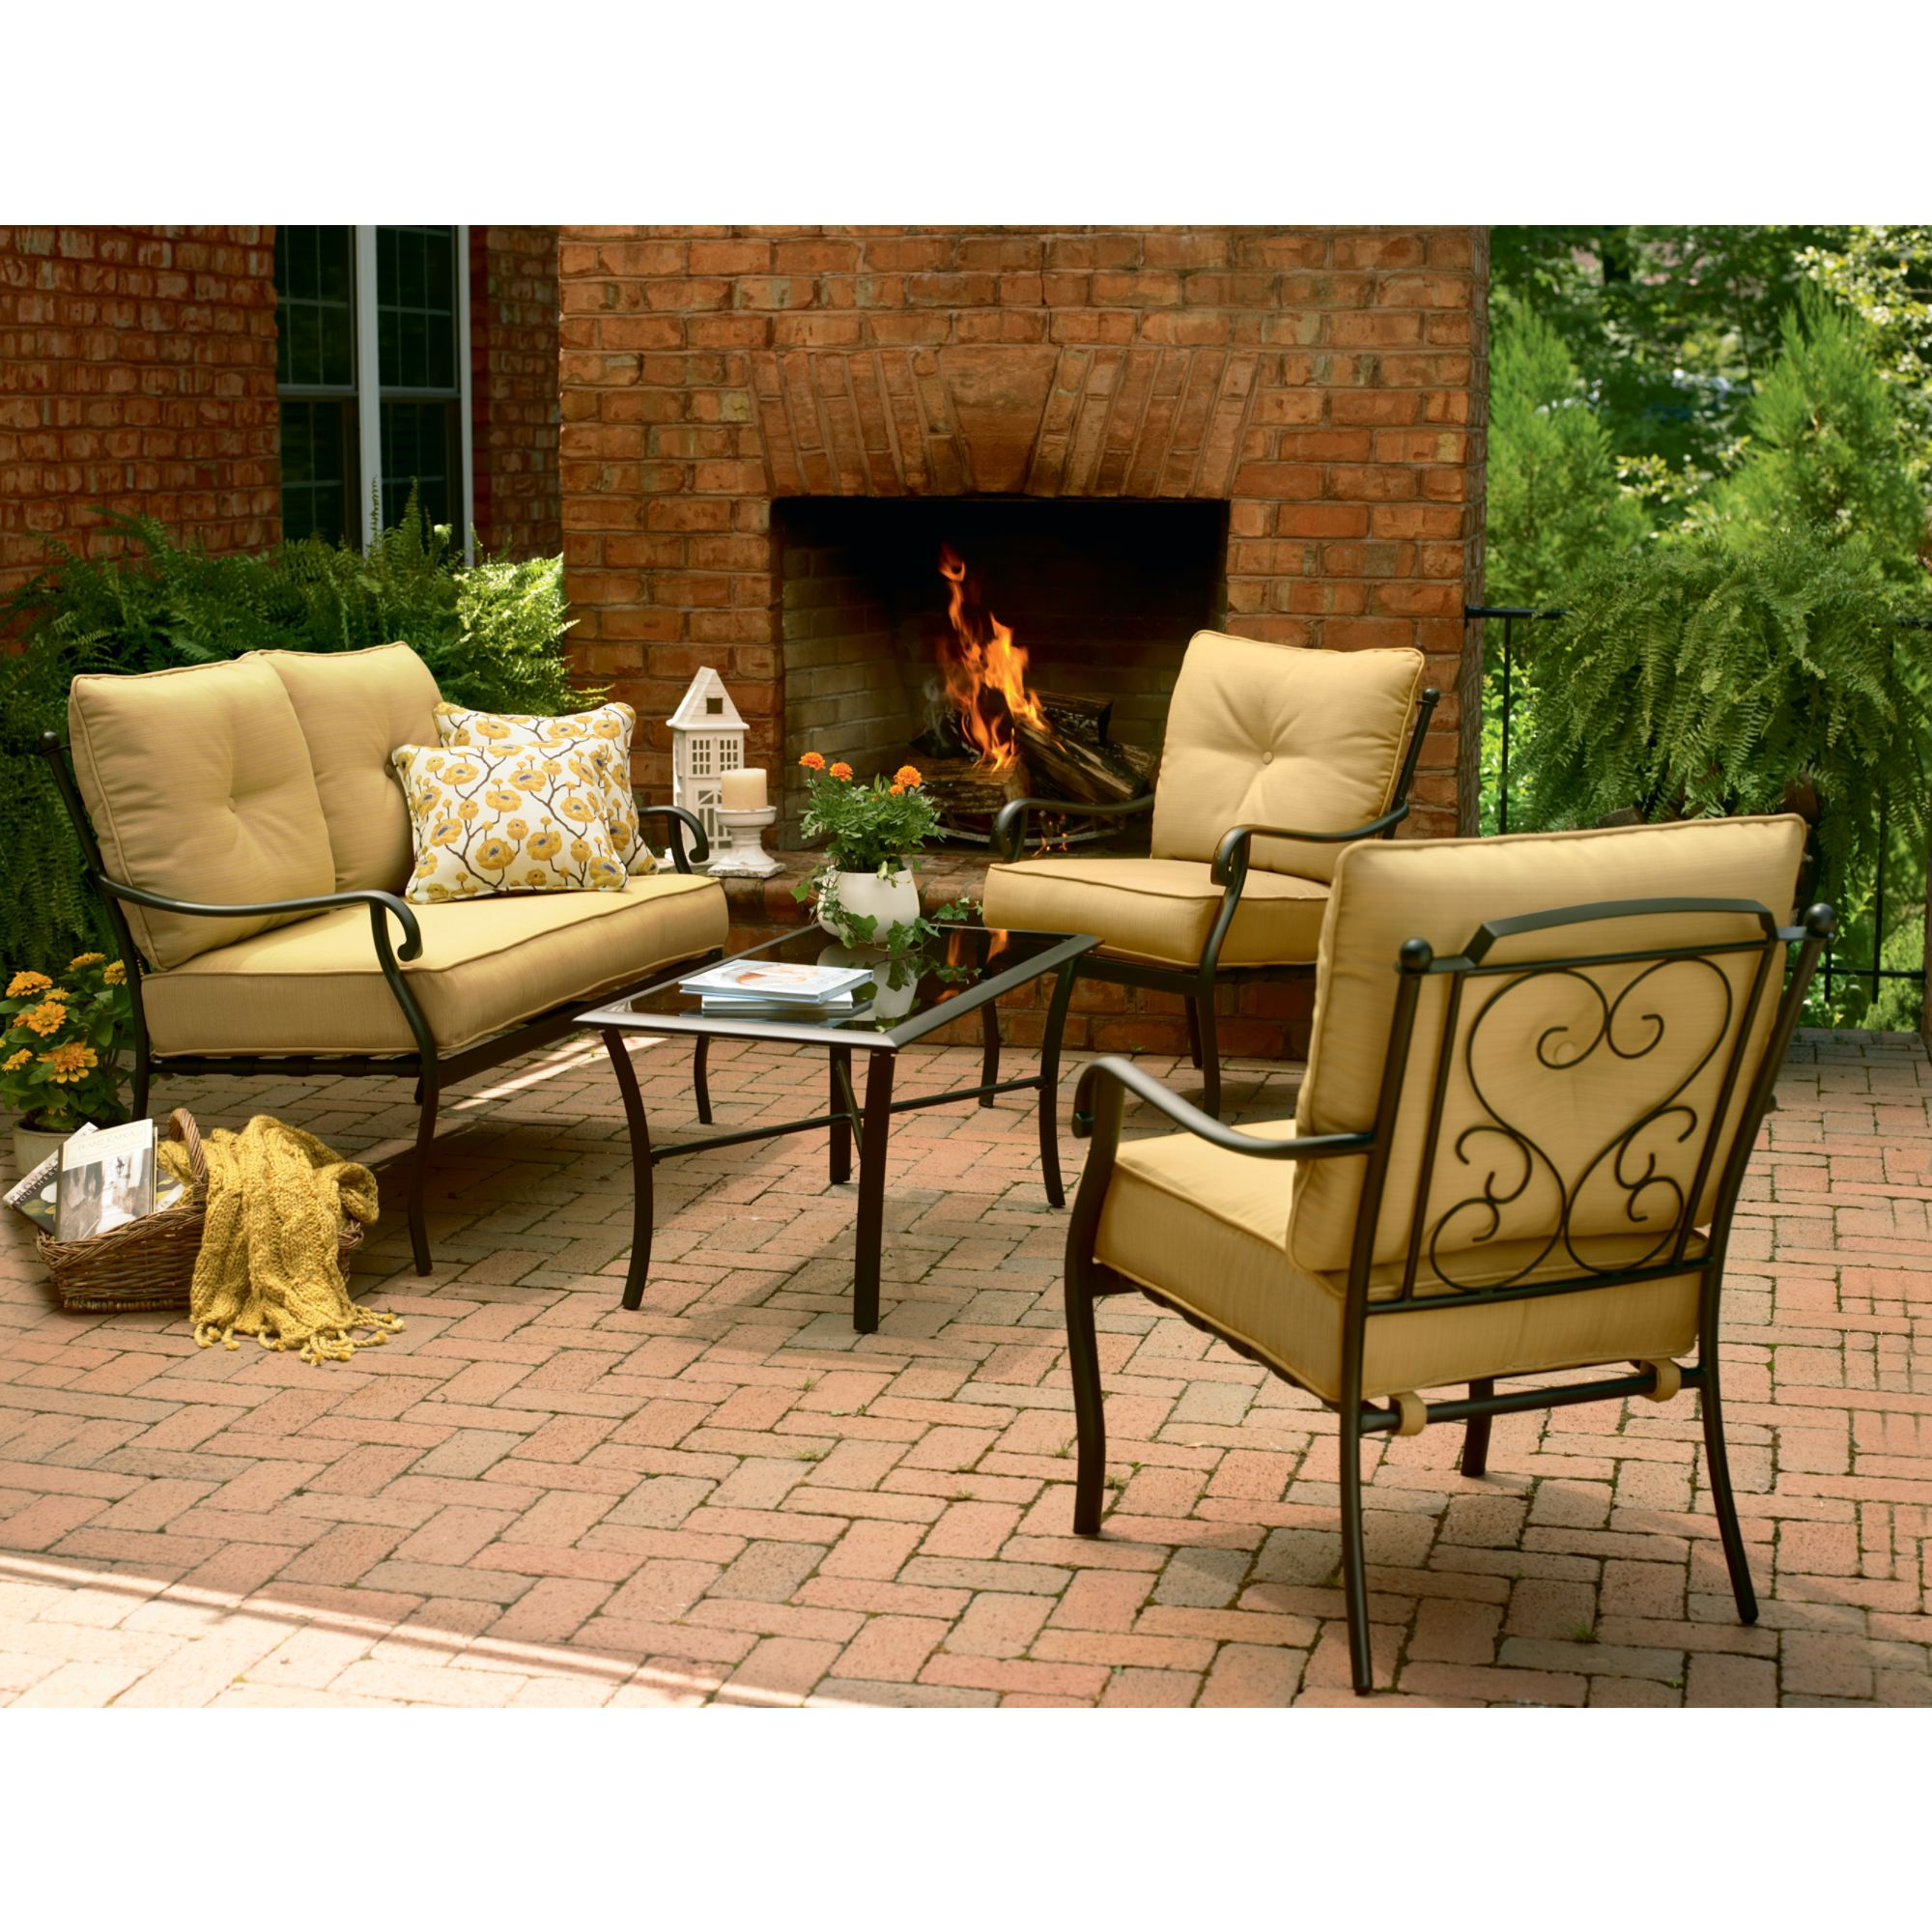 Vinton 4 Pc. Patio Deep Seating Set